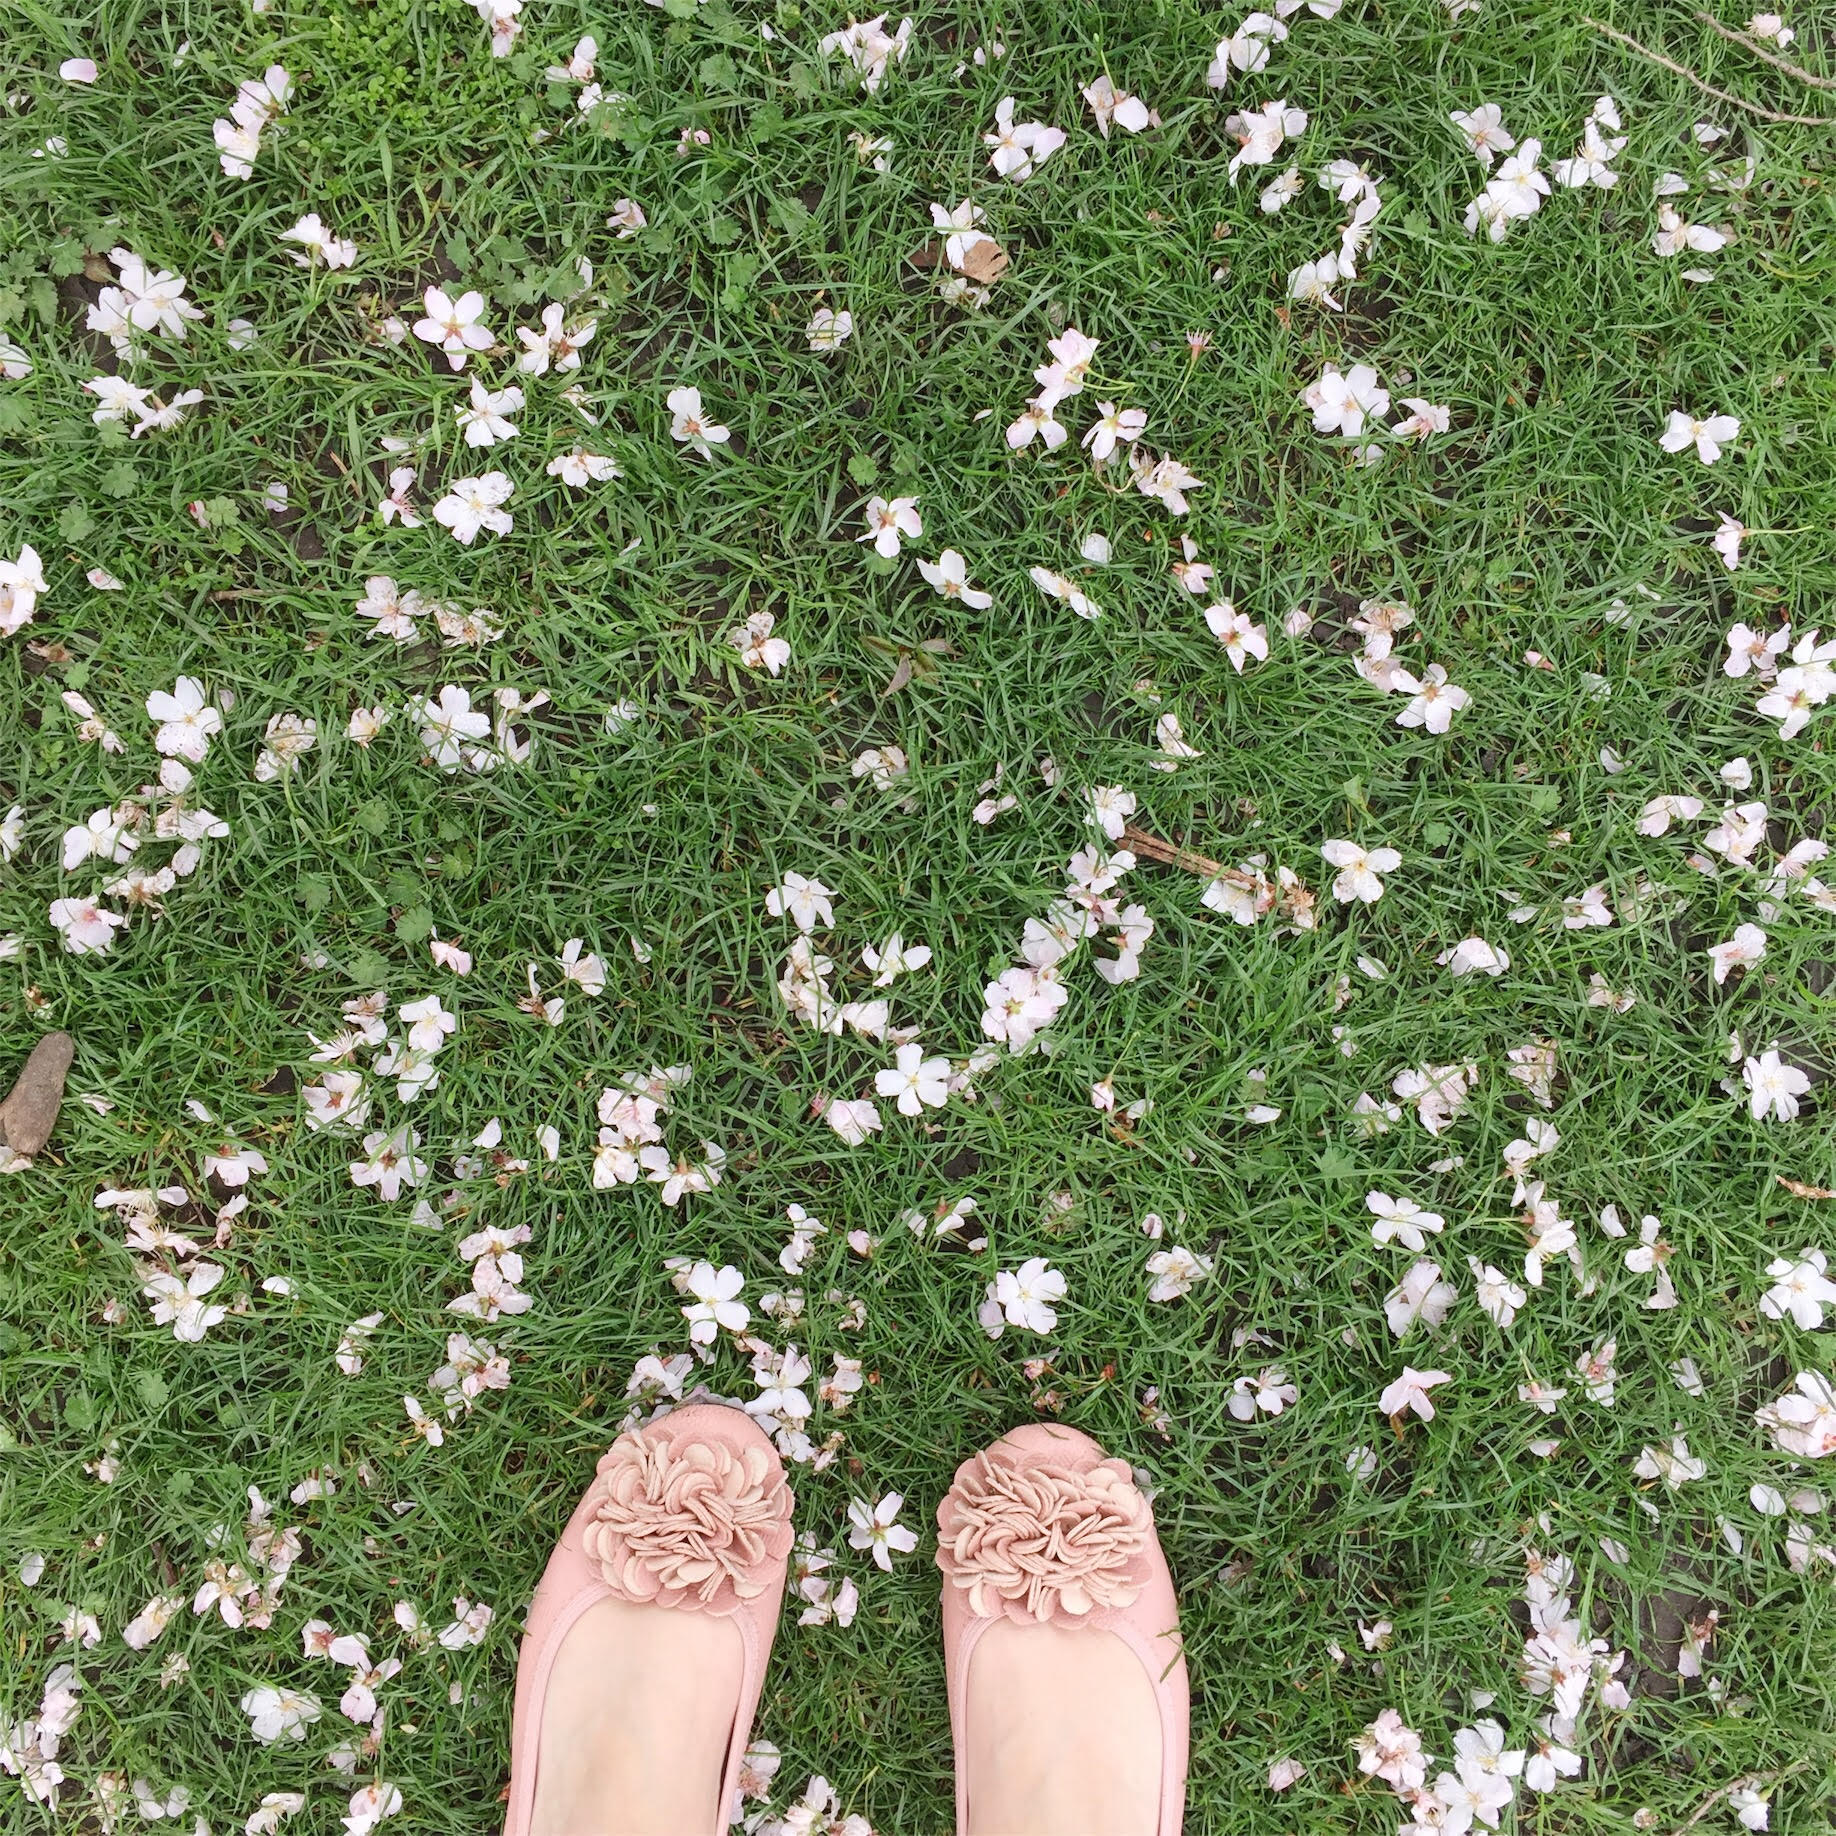 Feet in the flowers, head in the clouds